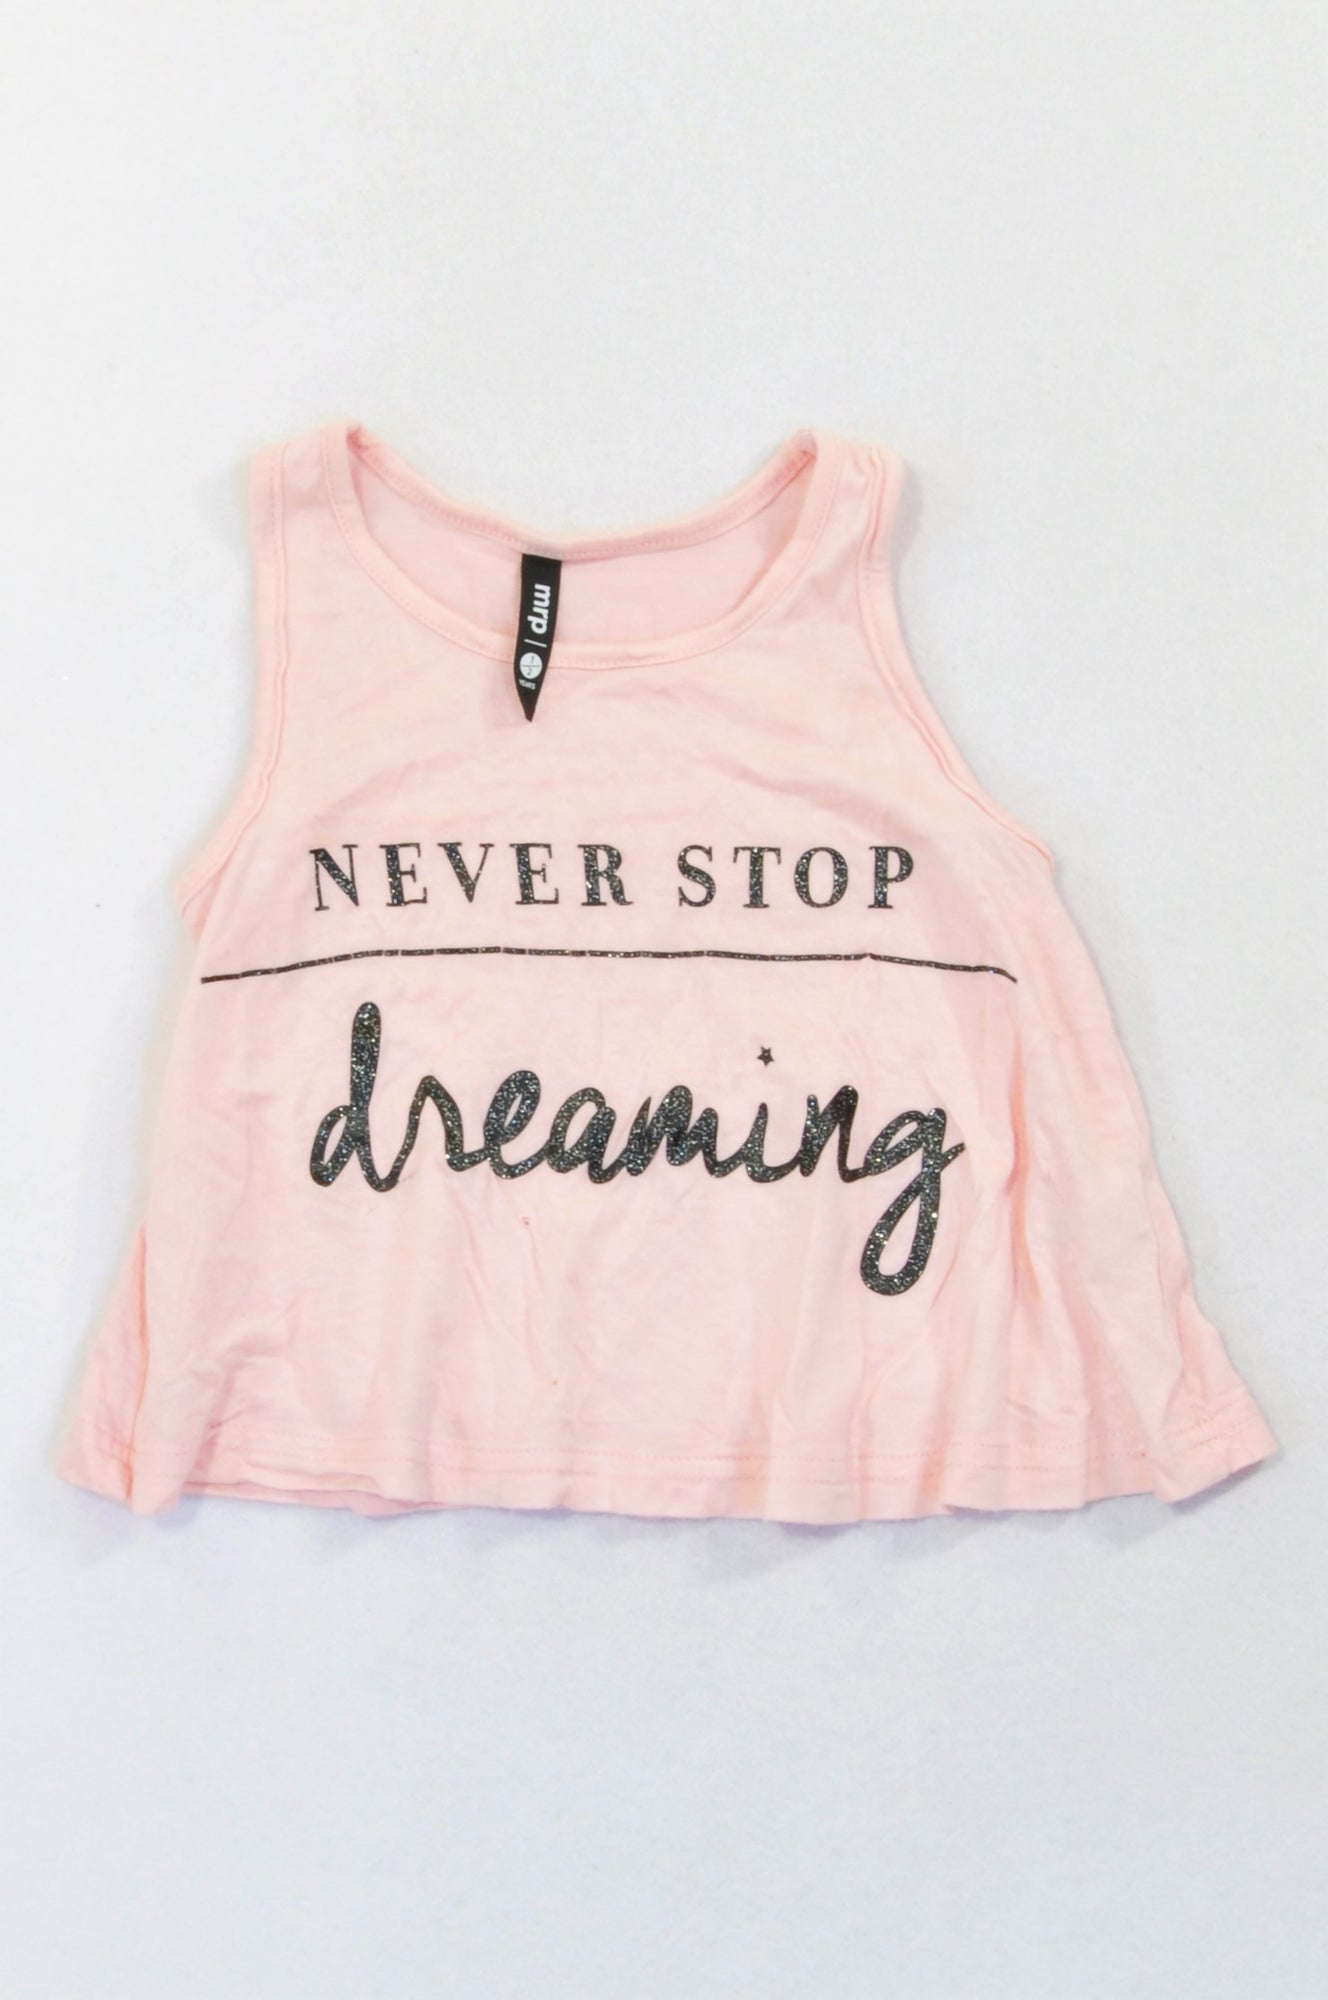 Mr. Price Pink Lightweight Never Stop Dreaming Tank Top Girls 1-2 years